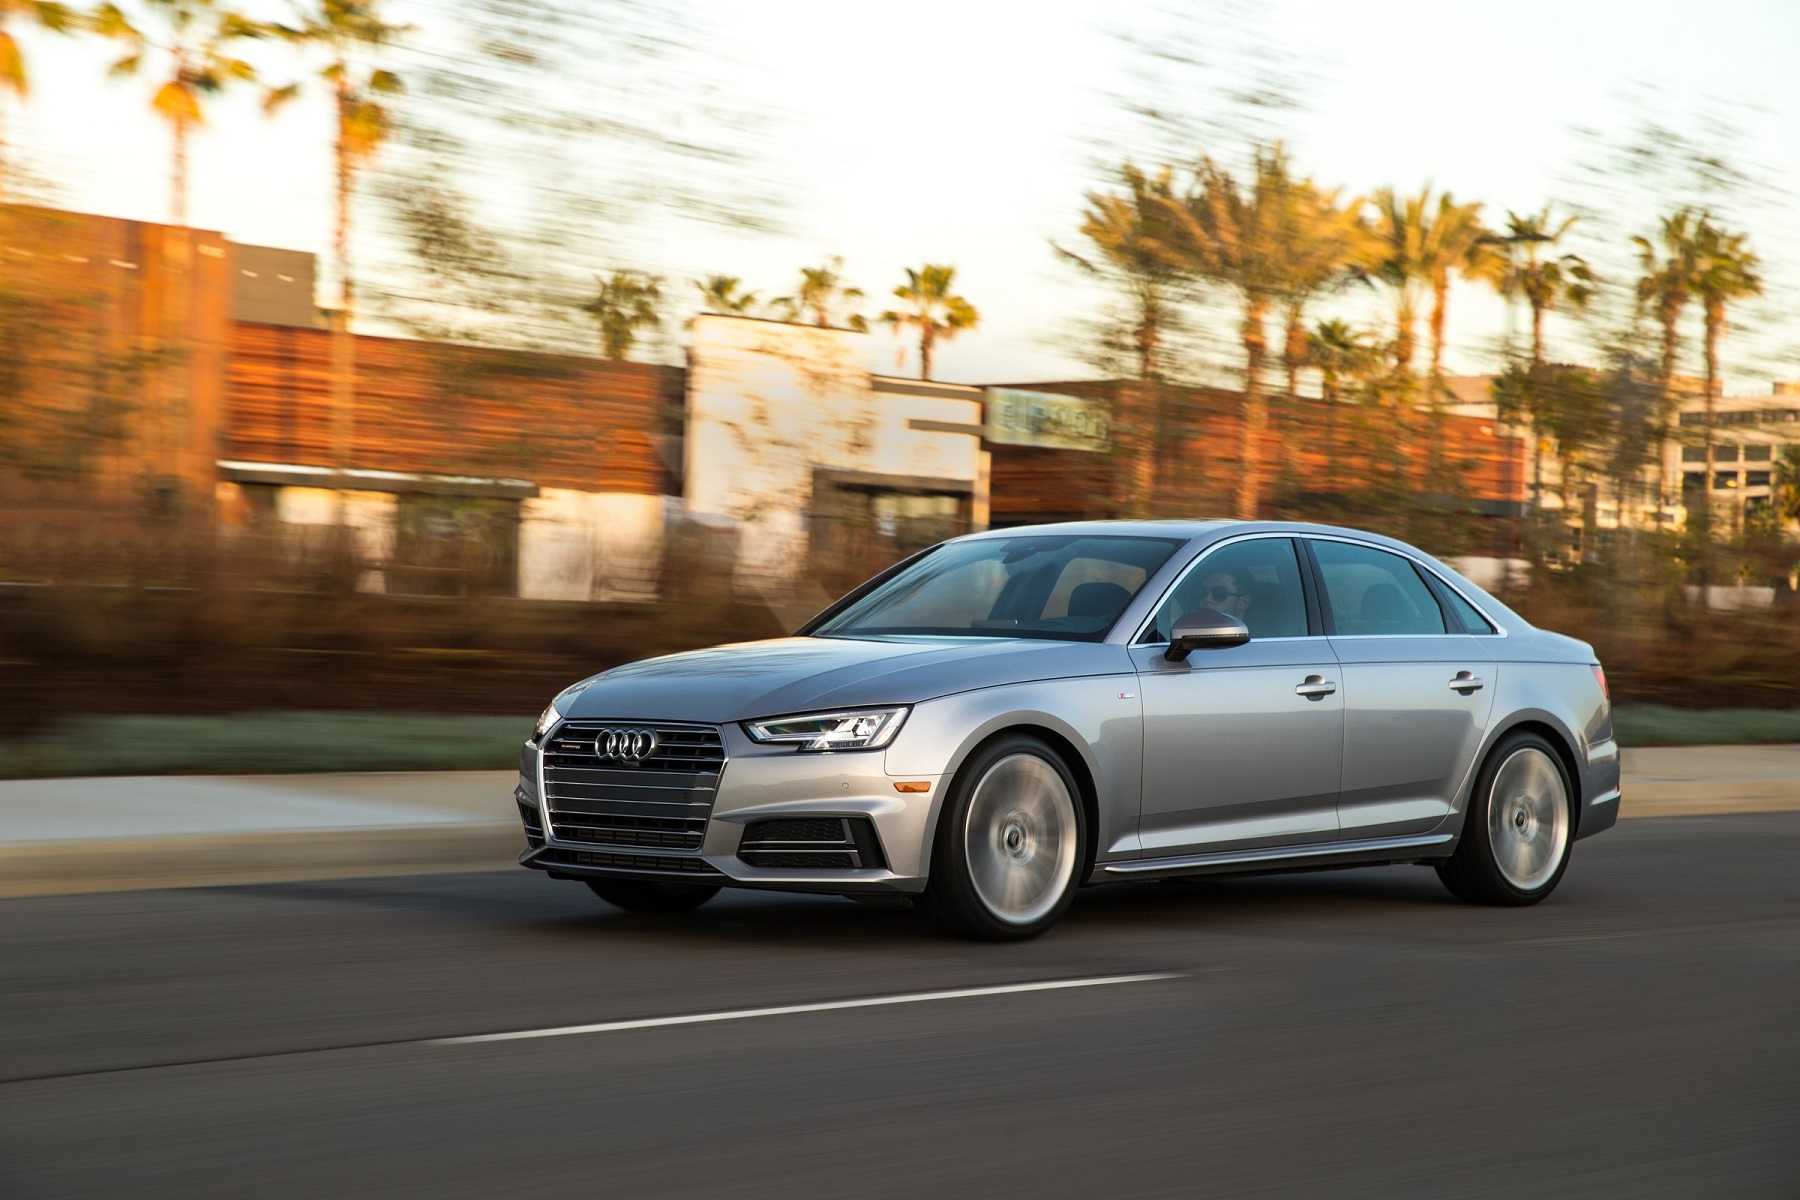 Manufacturer photo: From the redeveloped engine to the available Audi virtual cockpit, there are technological innovations found throughout the 2017 Audi A4 all-new sedan